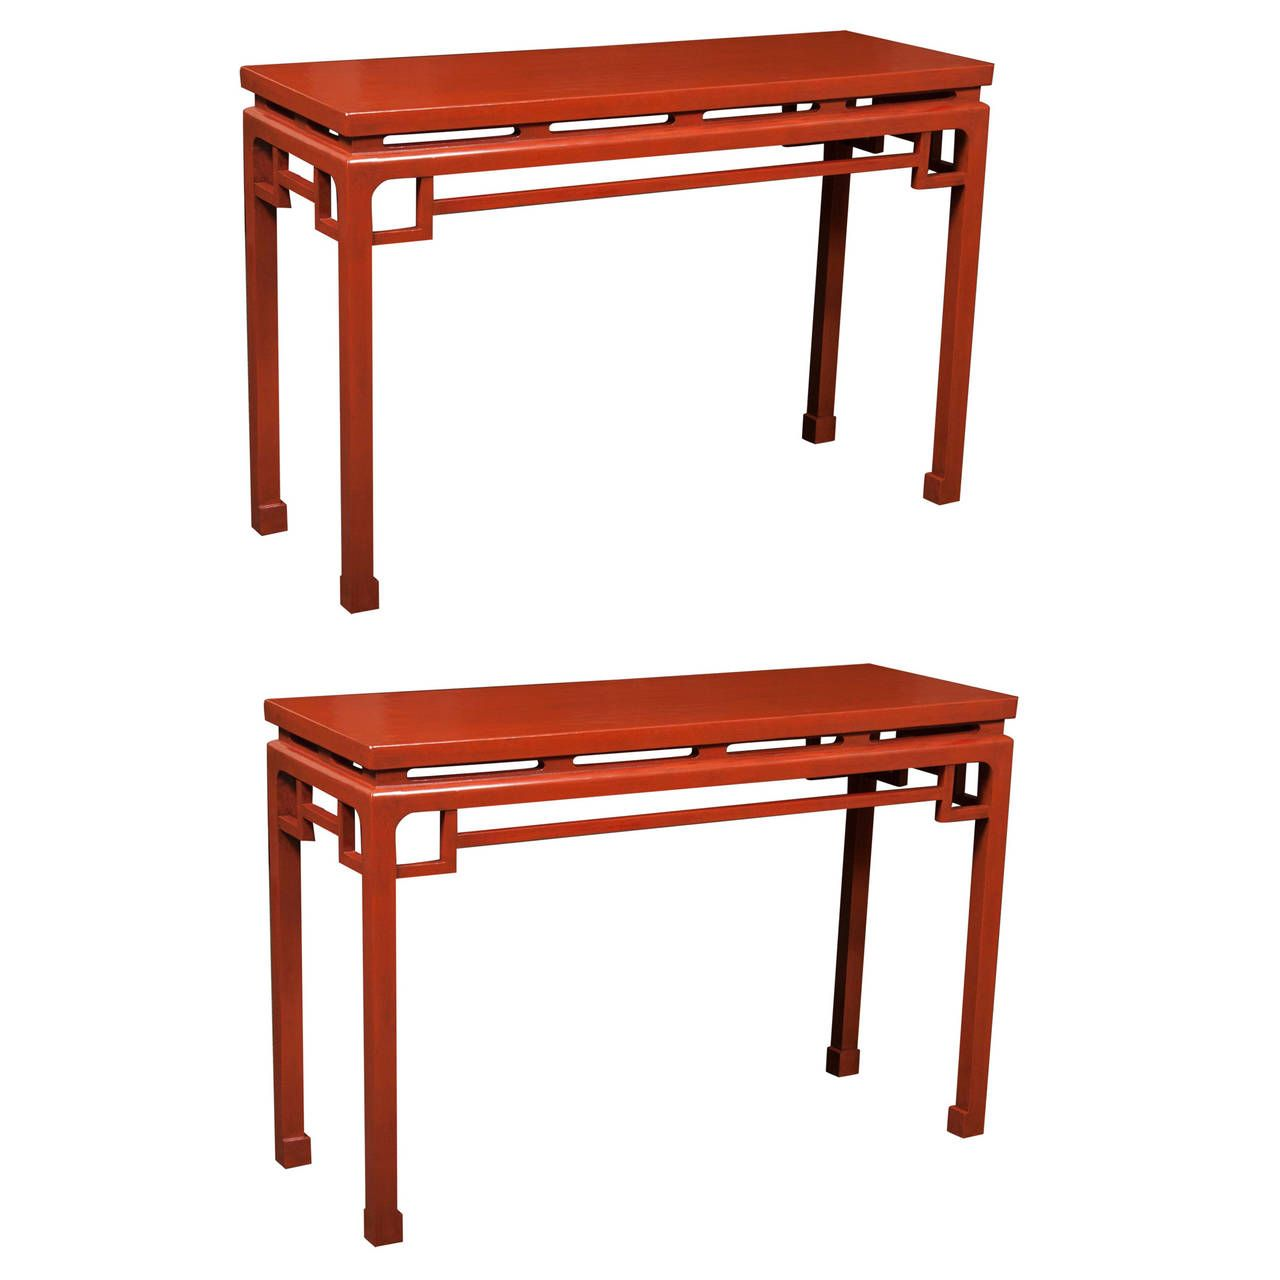 red lacquered furniture. Pair Of Chinese Red Lacquered Console Tables Furniture R